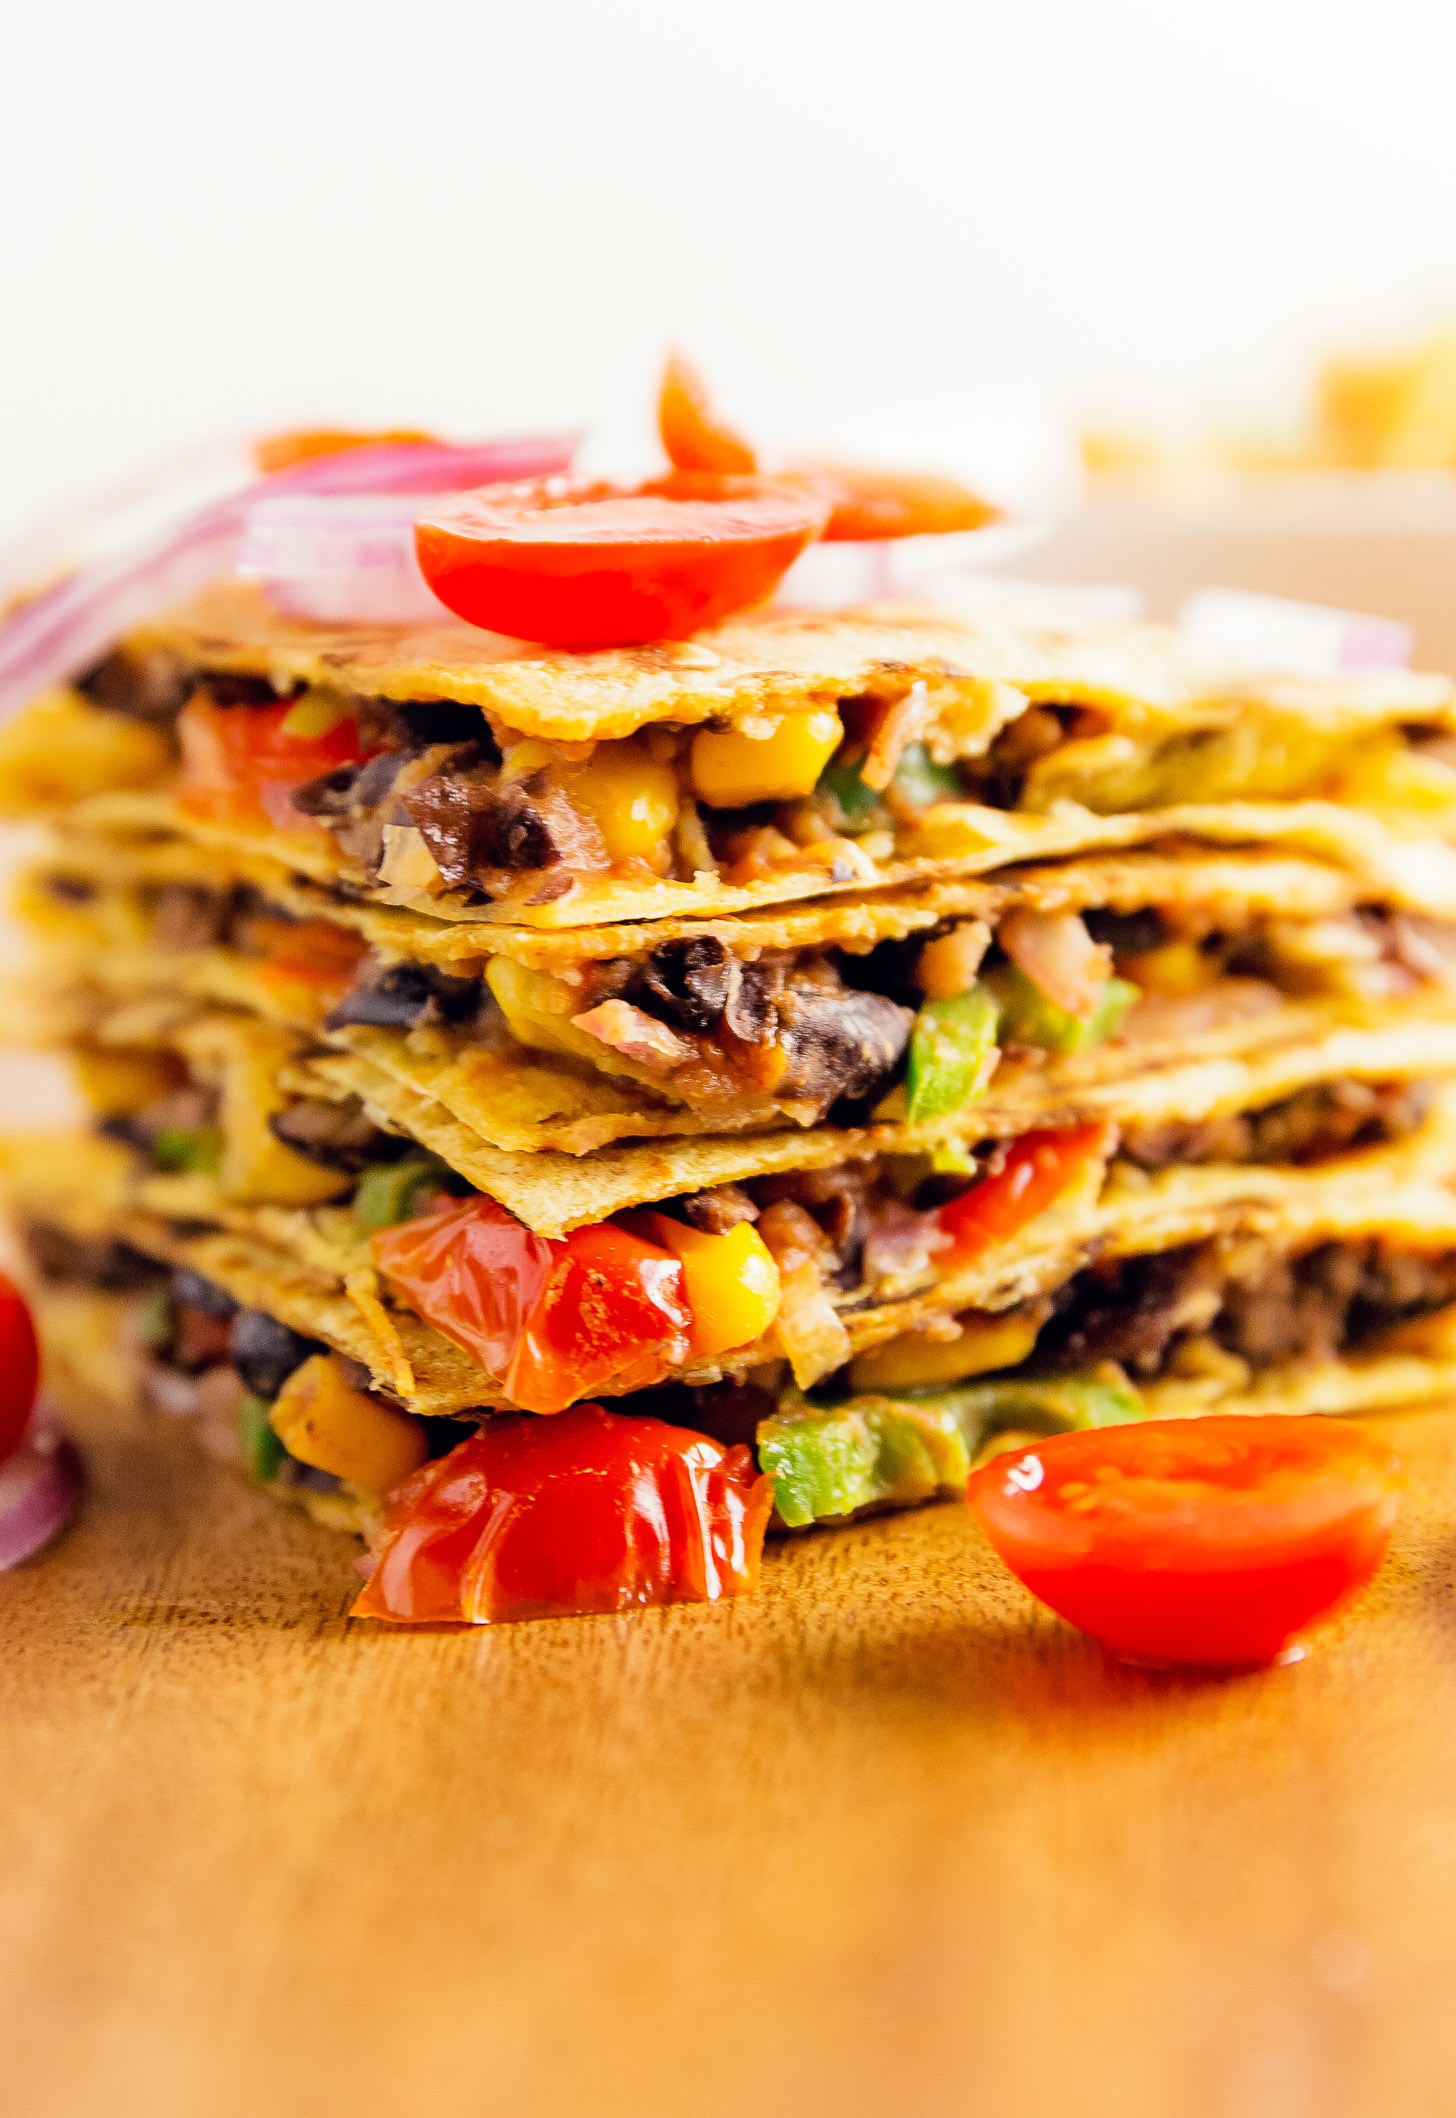 Easy Whole Food Plant Based Recipes  Quesadillas Monkey and Me Kitchen Adventures